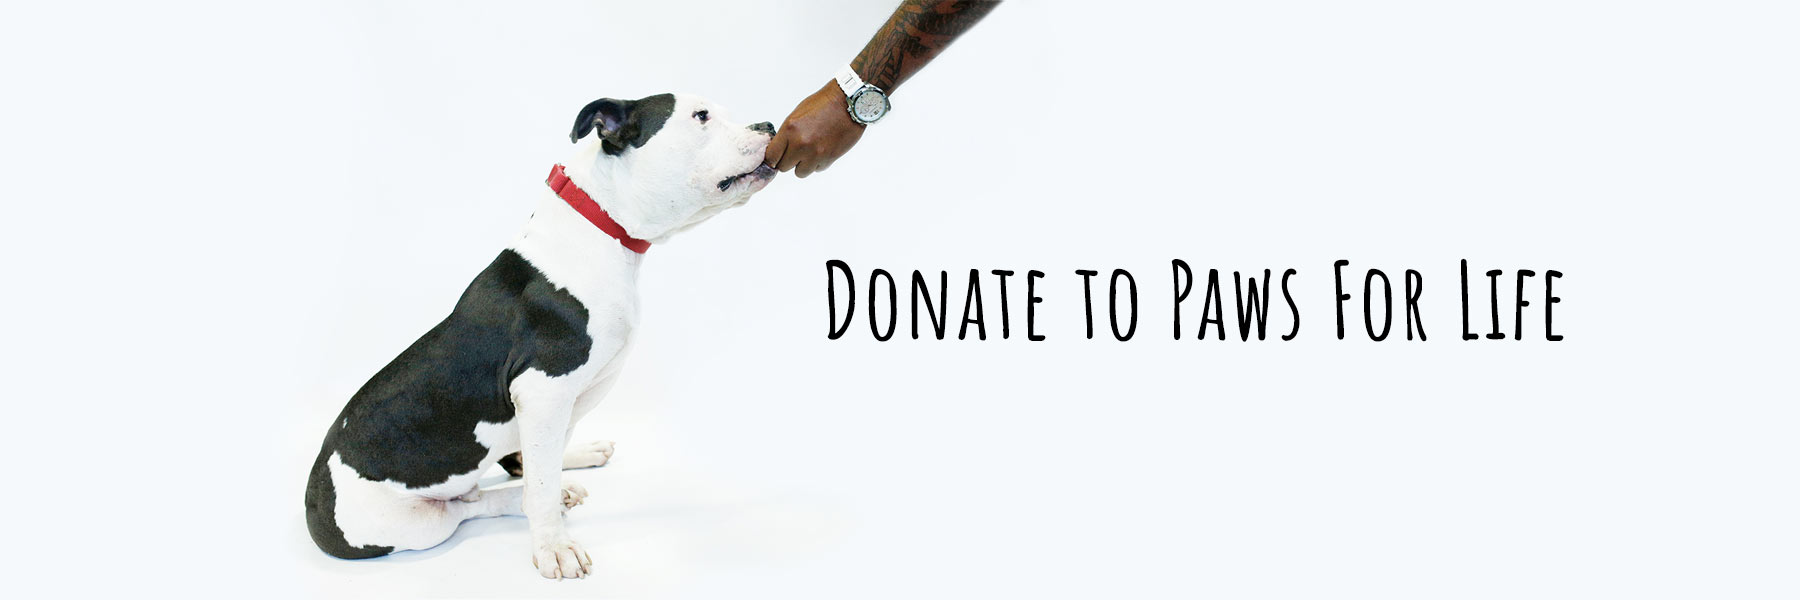 Donate To Paws For Life